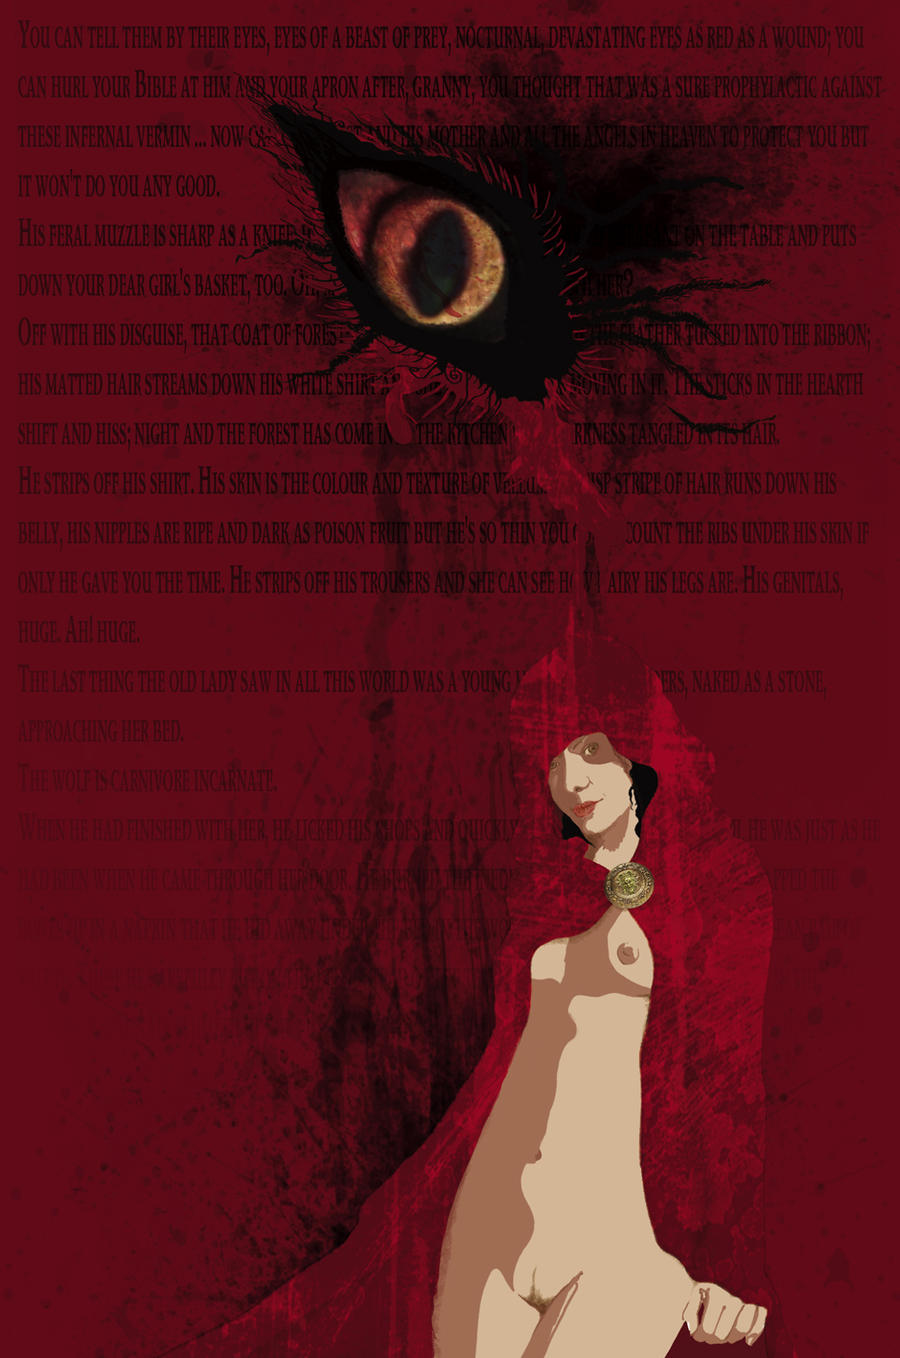 repression of women and the feminist perspective in the bloody chamber a novel by angela carter The bloody chamber, is a direct feminist retelling of the young bride's first-person perspective can angela carter's novel, the bloody chamber.